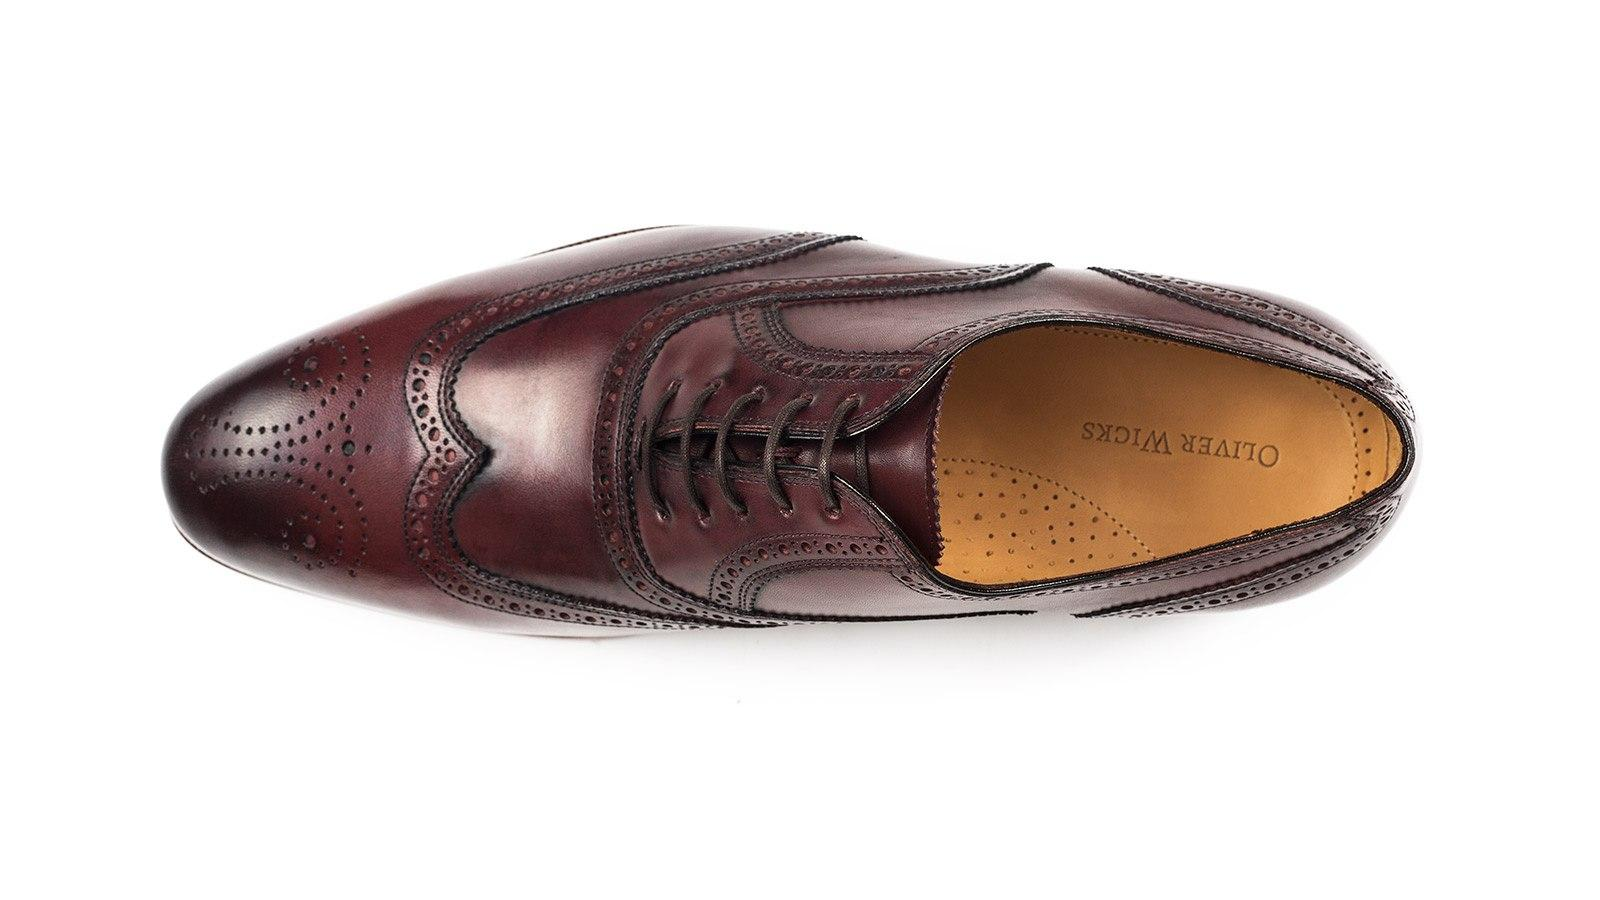 Burgundy Wingtip Oxford - slider image 1